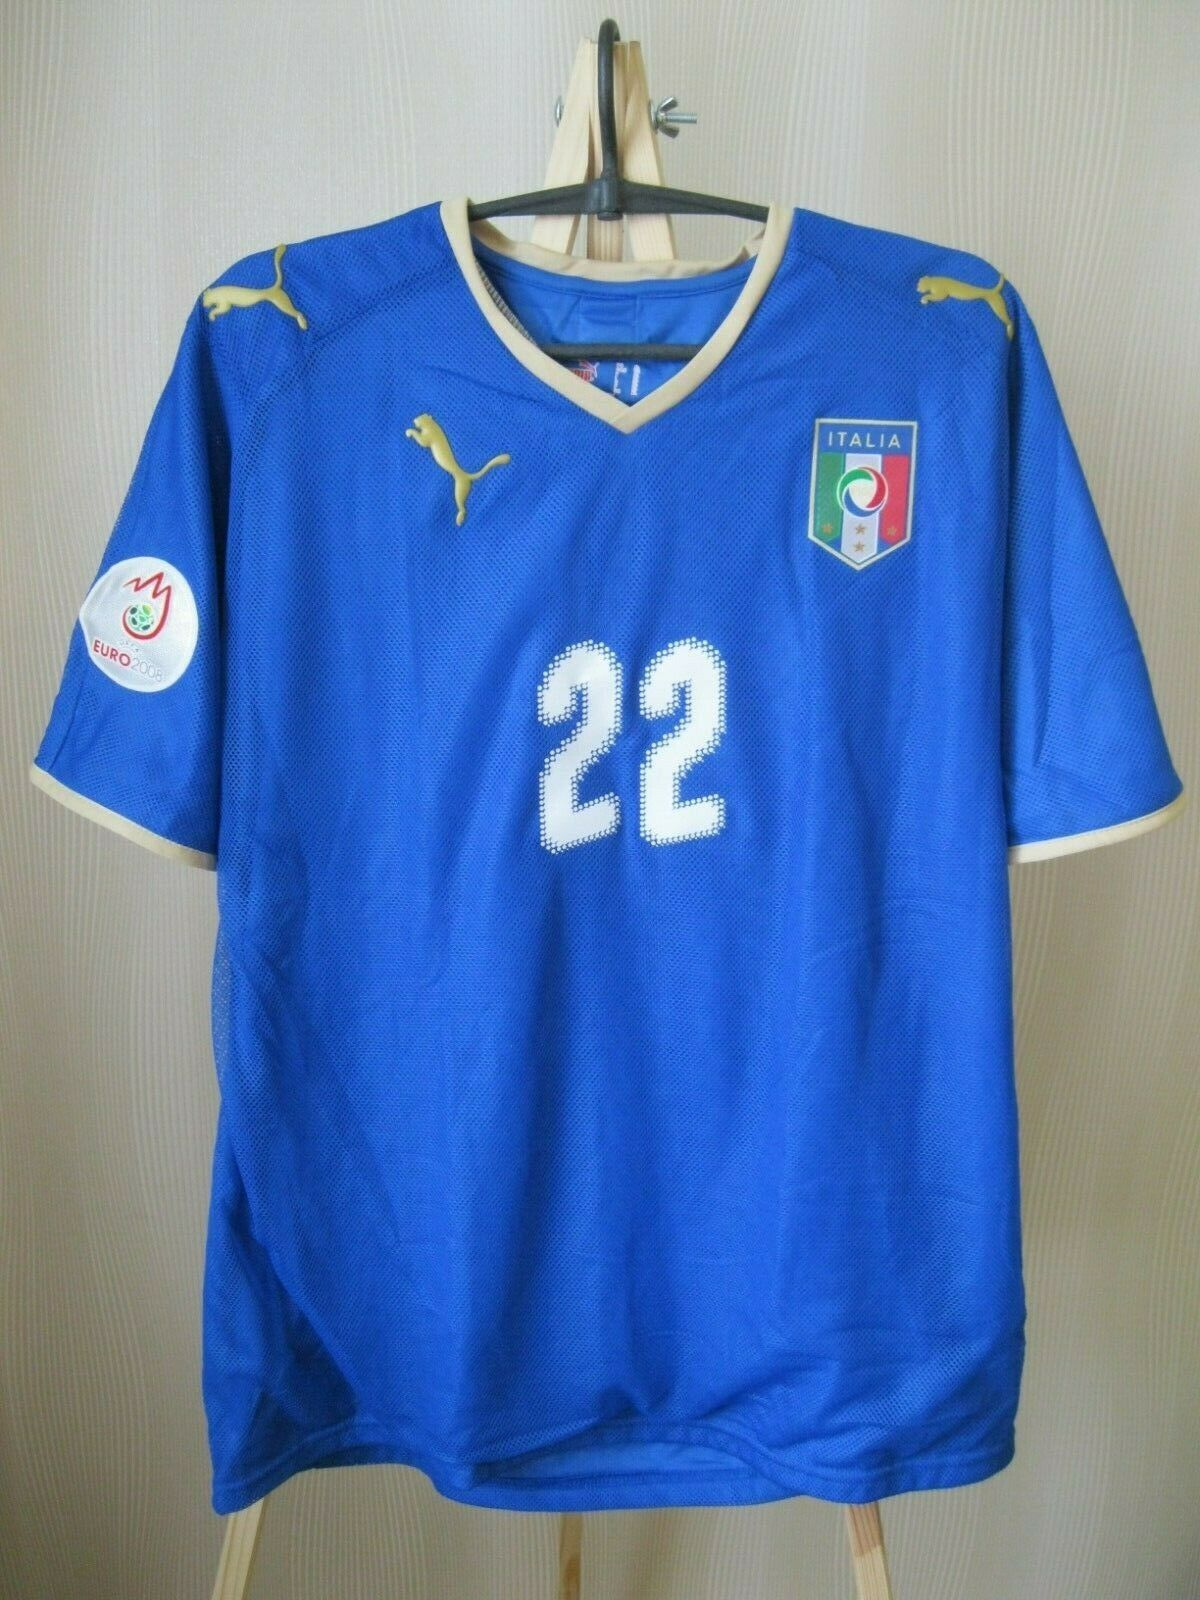 Italy team #22 Aquilani 2008/2009 home Size XL Puma jersey